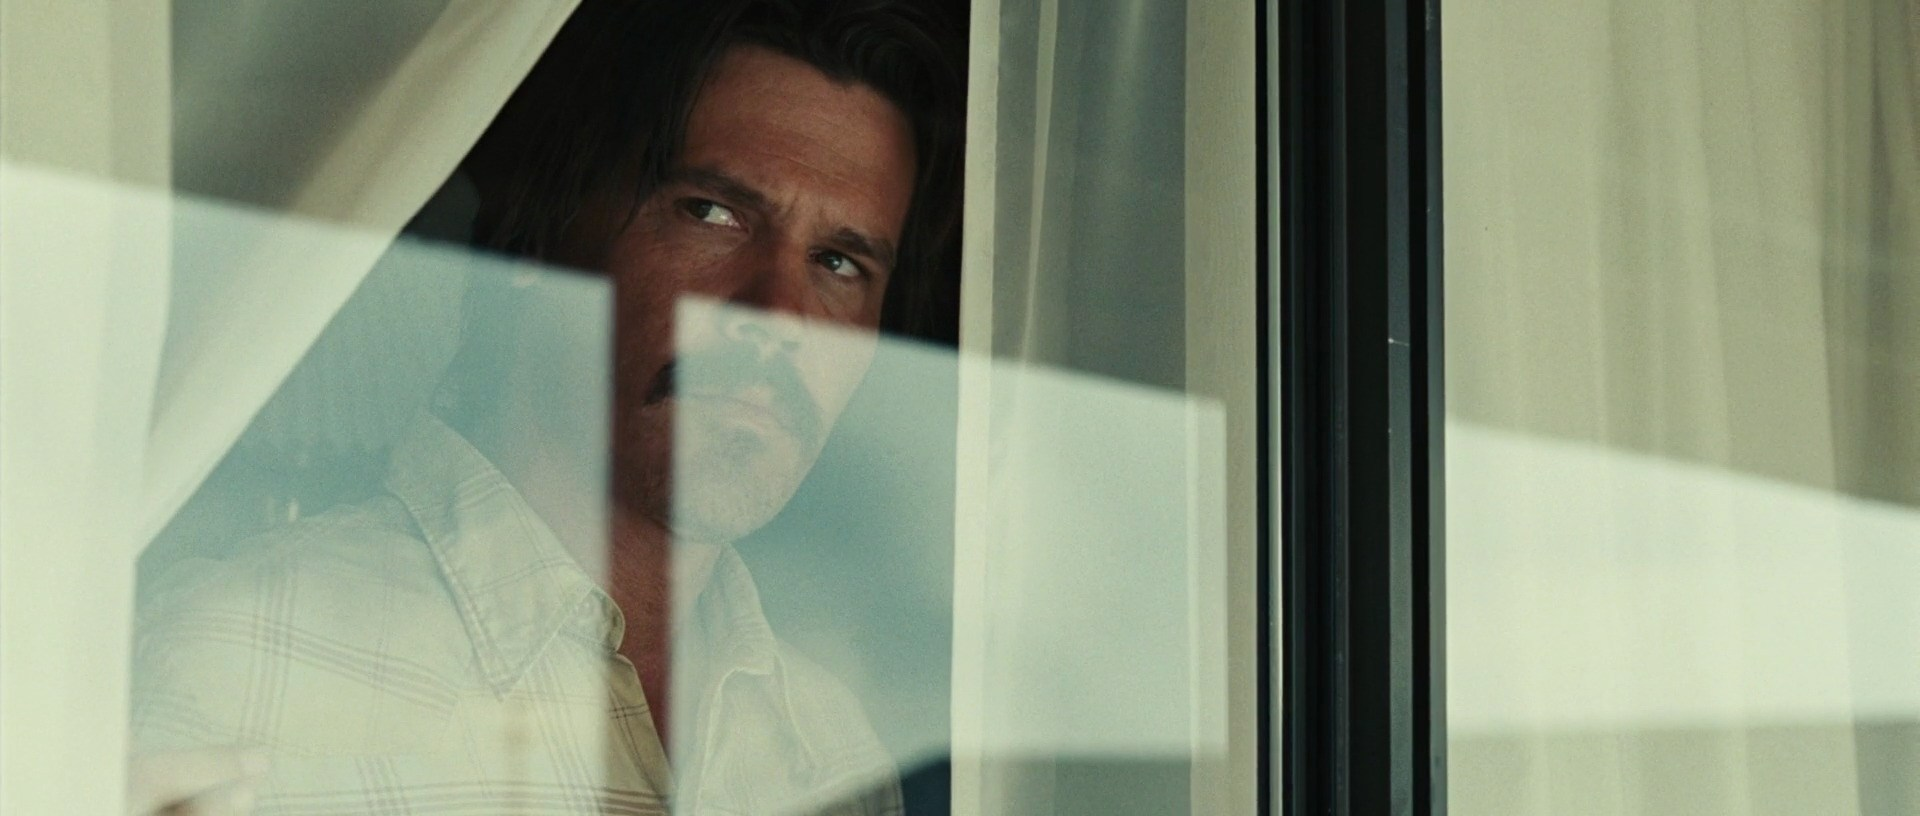 no-country-for-old-men-movie-screencaps.com-4463.jpg